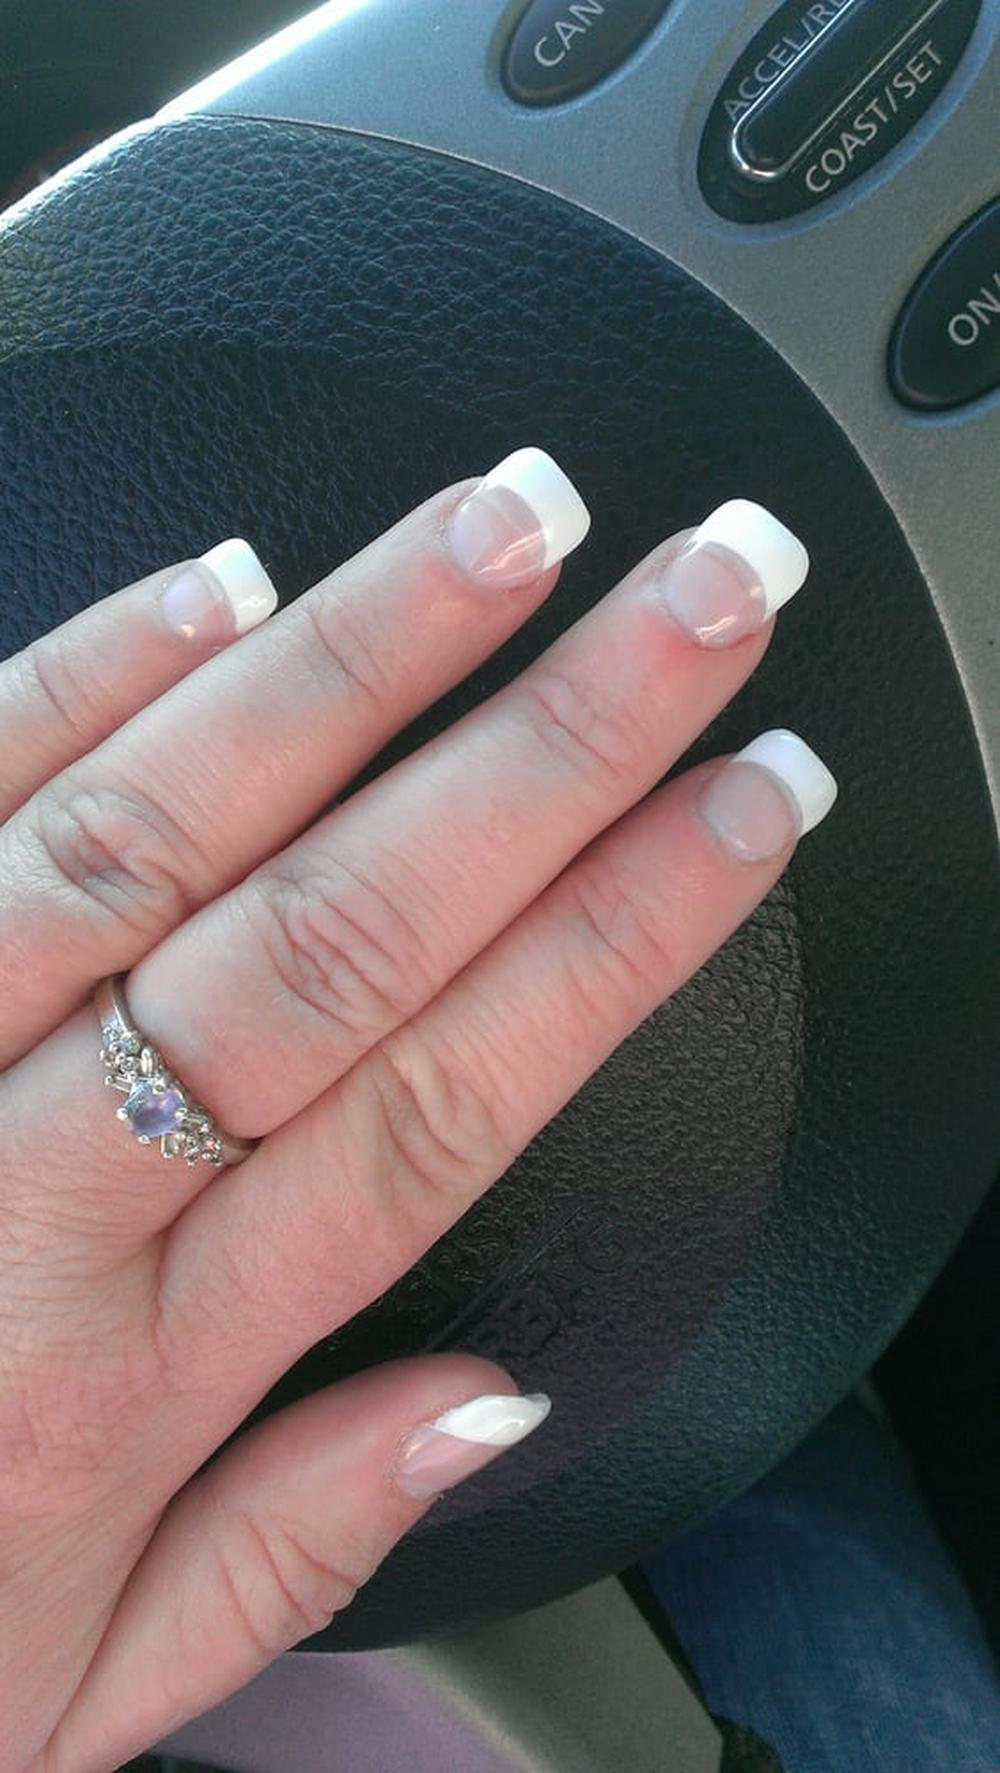 Nails 1st and Spa